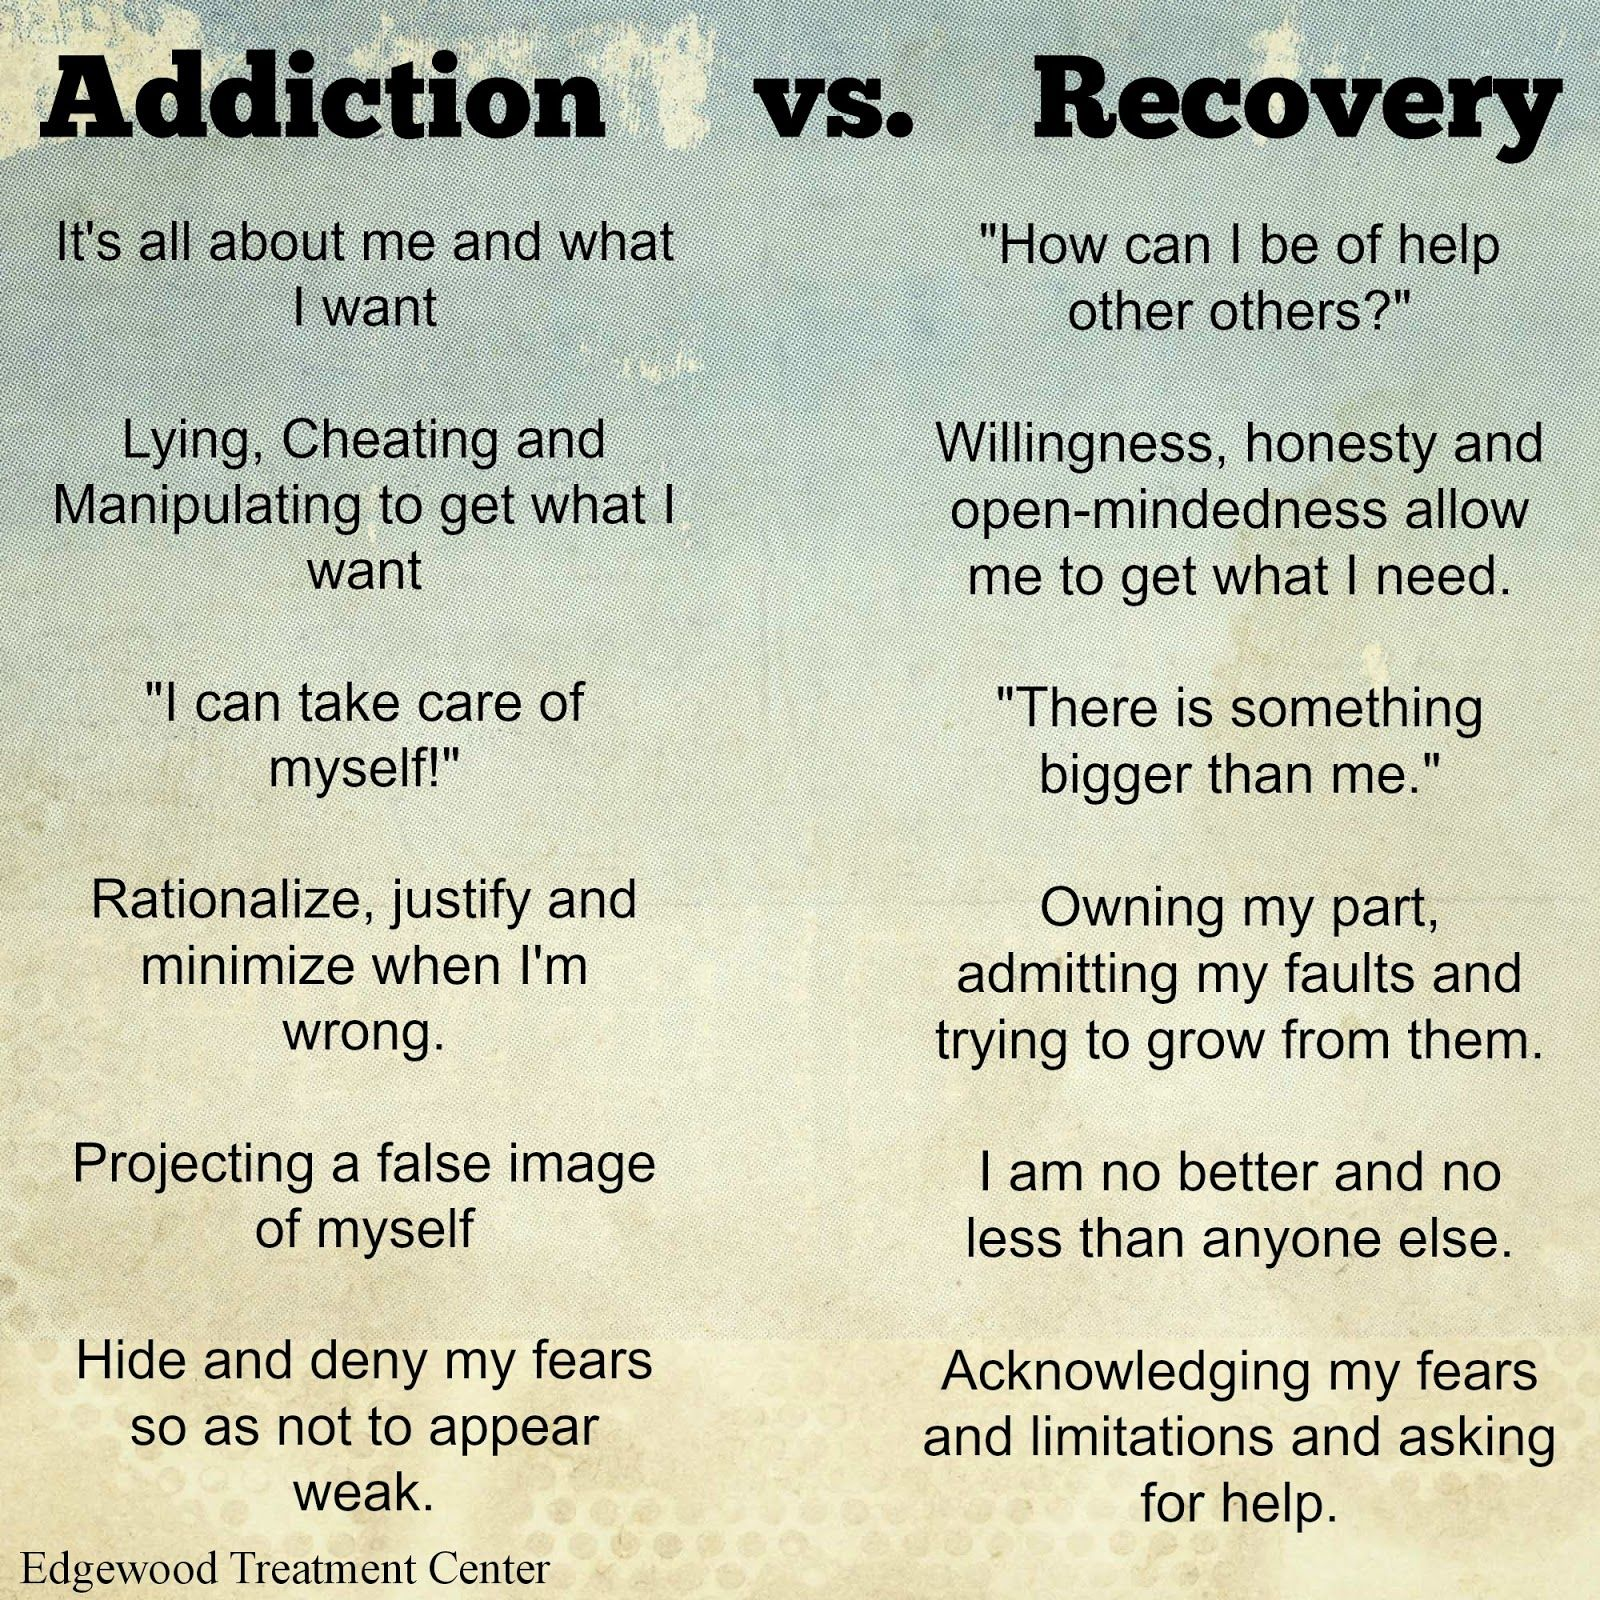 May 27, 2016 - Readings in Recovery: Step by Step